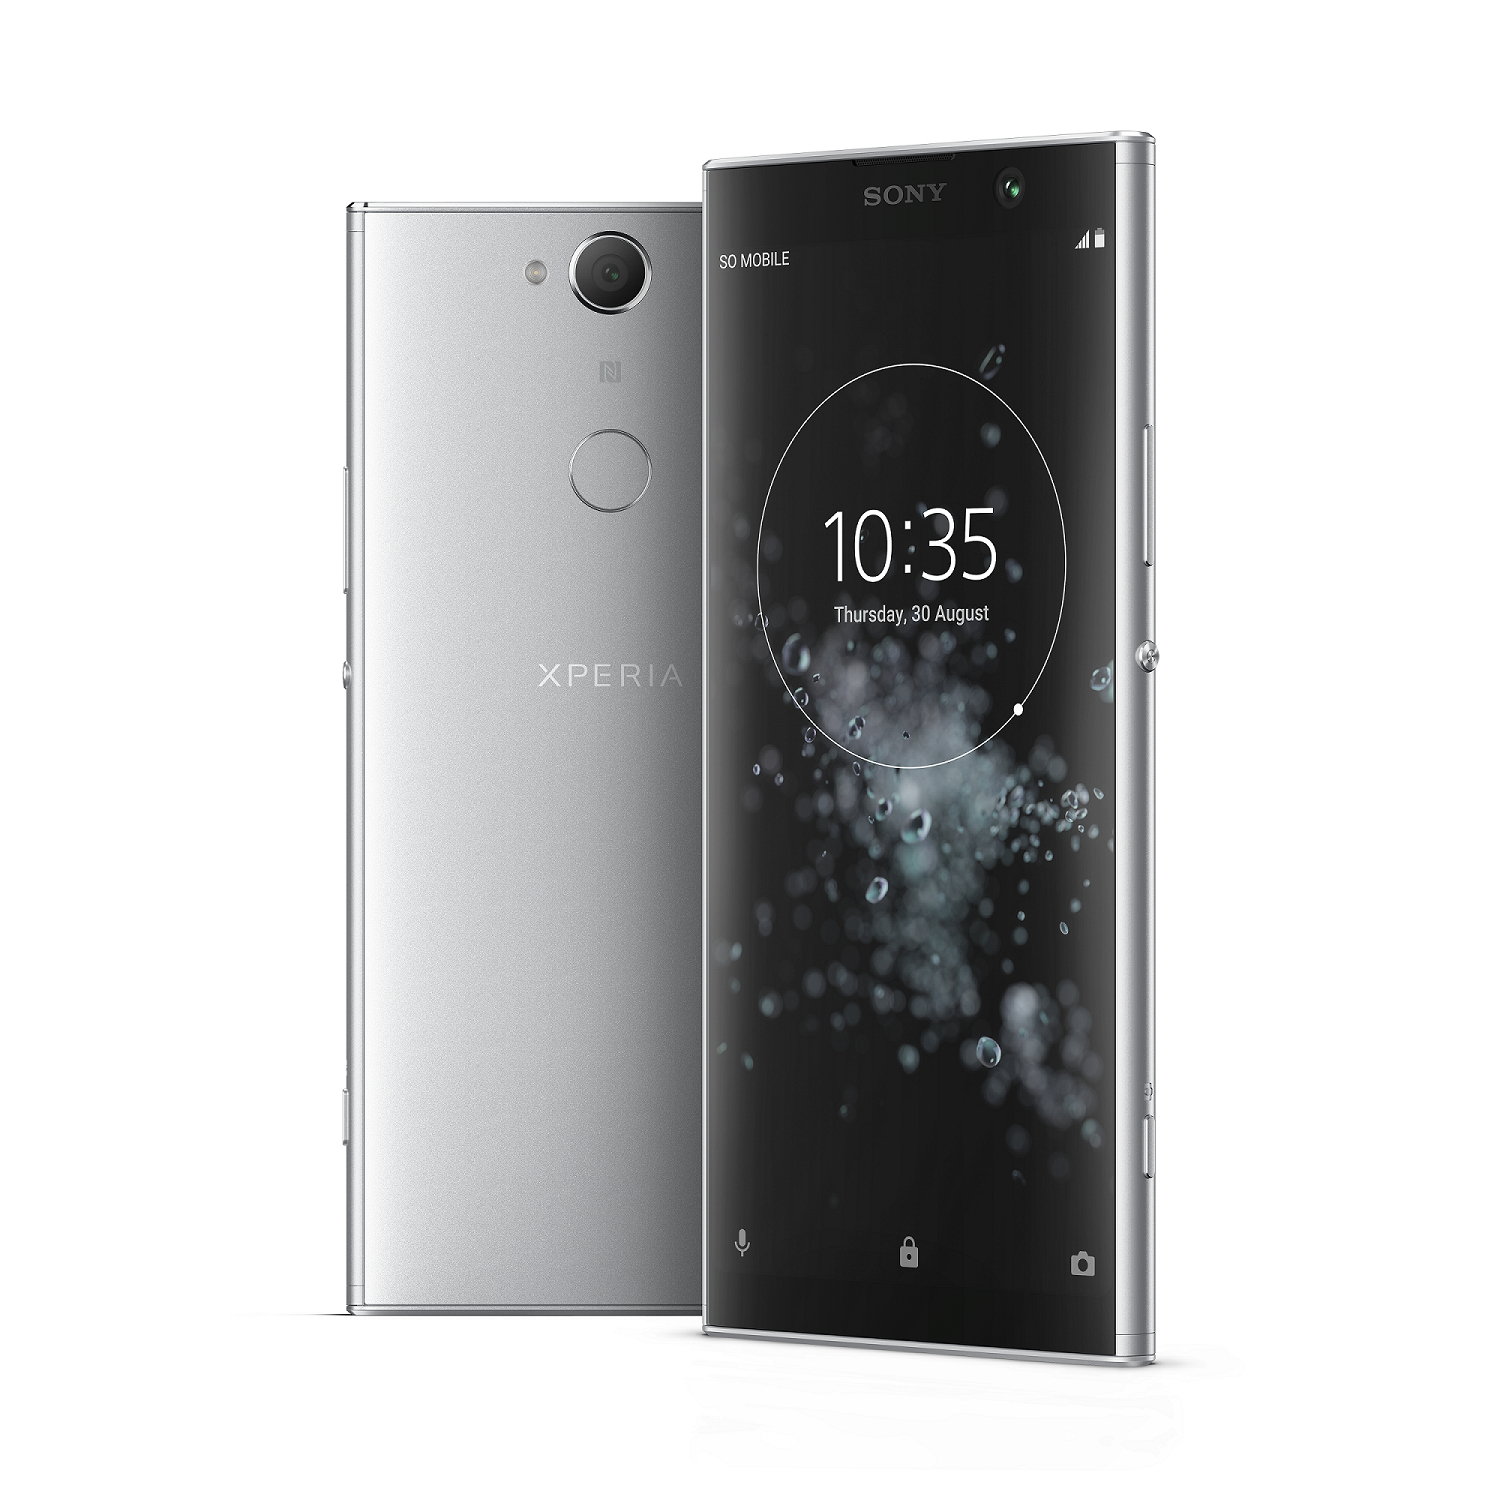 New Xperia XA2 Plus features a gorgeous 18:9 display and